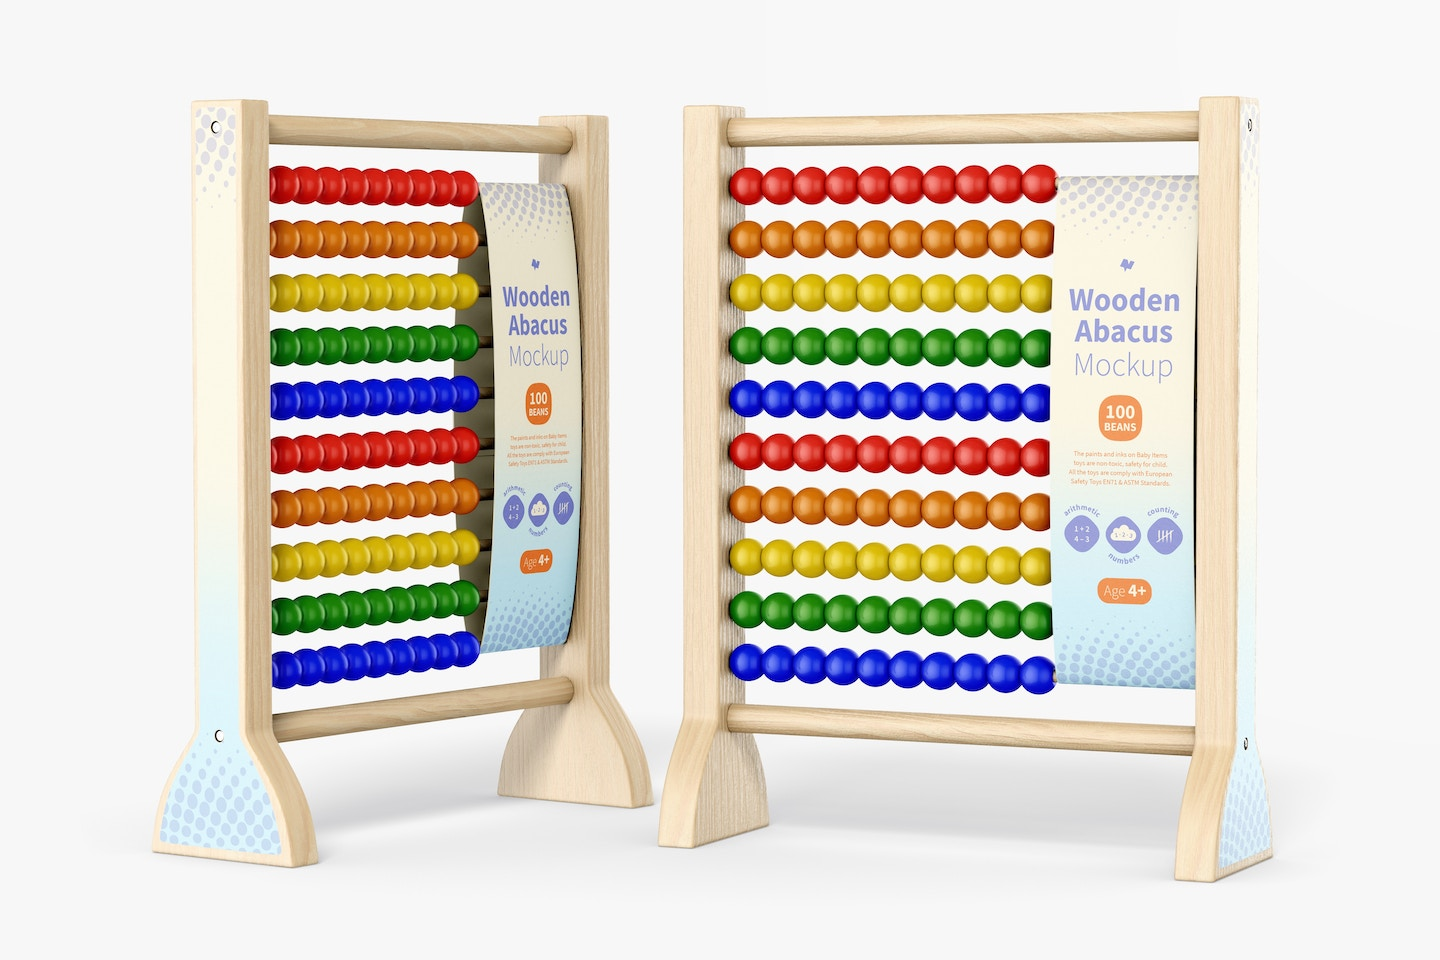 Wooden Abacus Mockup, Perspective